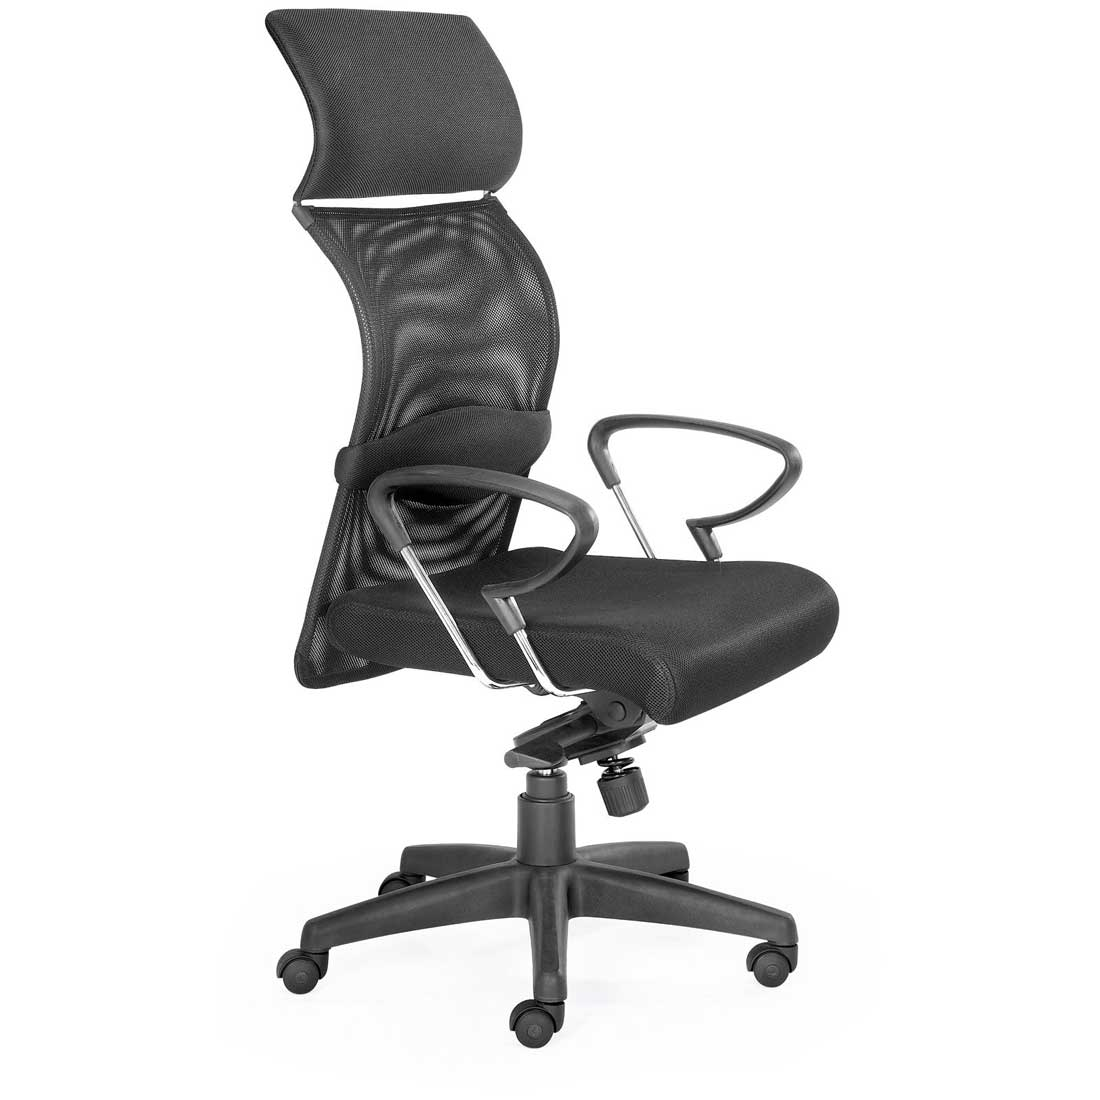 benedetina desk chairs ergonomic computer